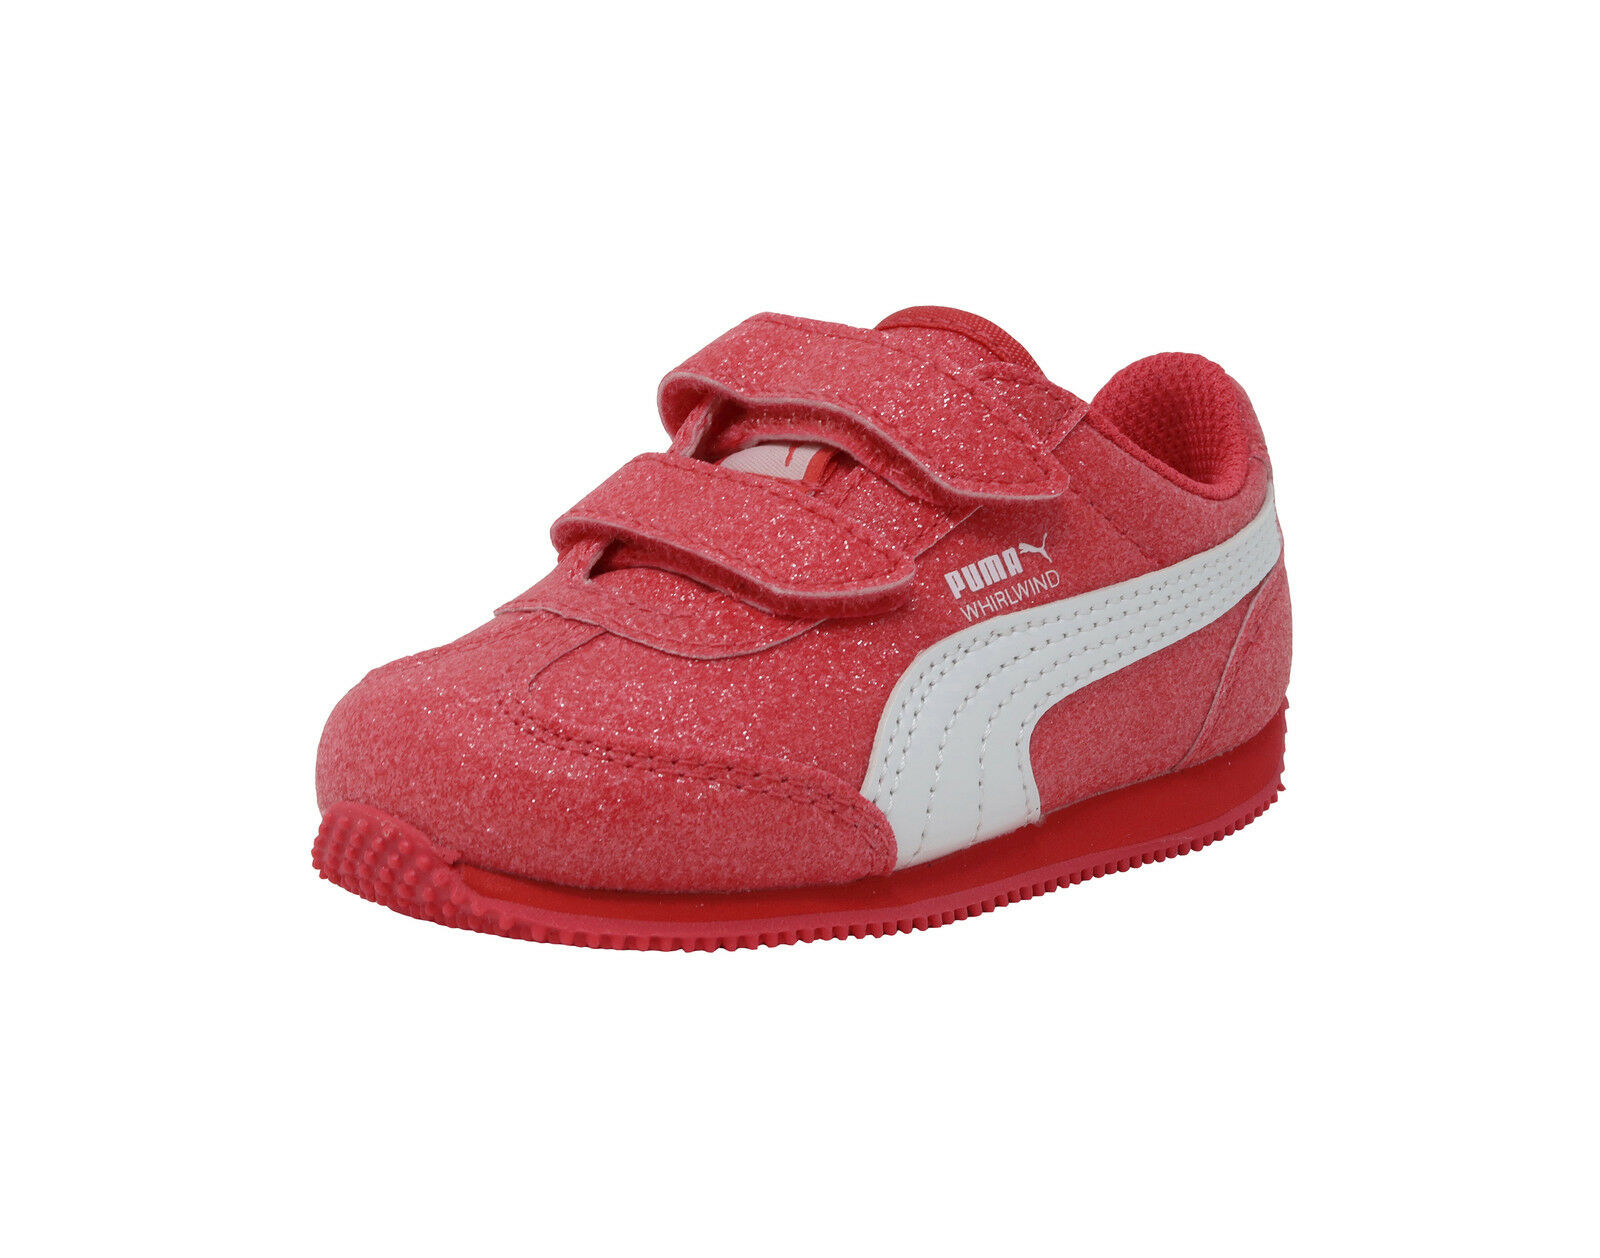 PUMA Whirlwind Glitz Pink White V Strap Infants Sneakers Babies Toddler  Shoes